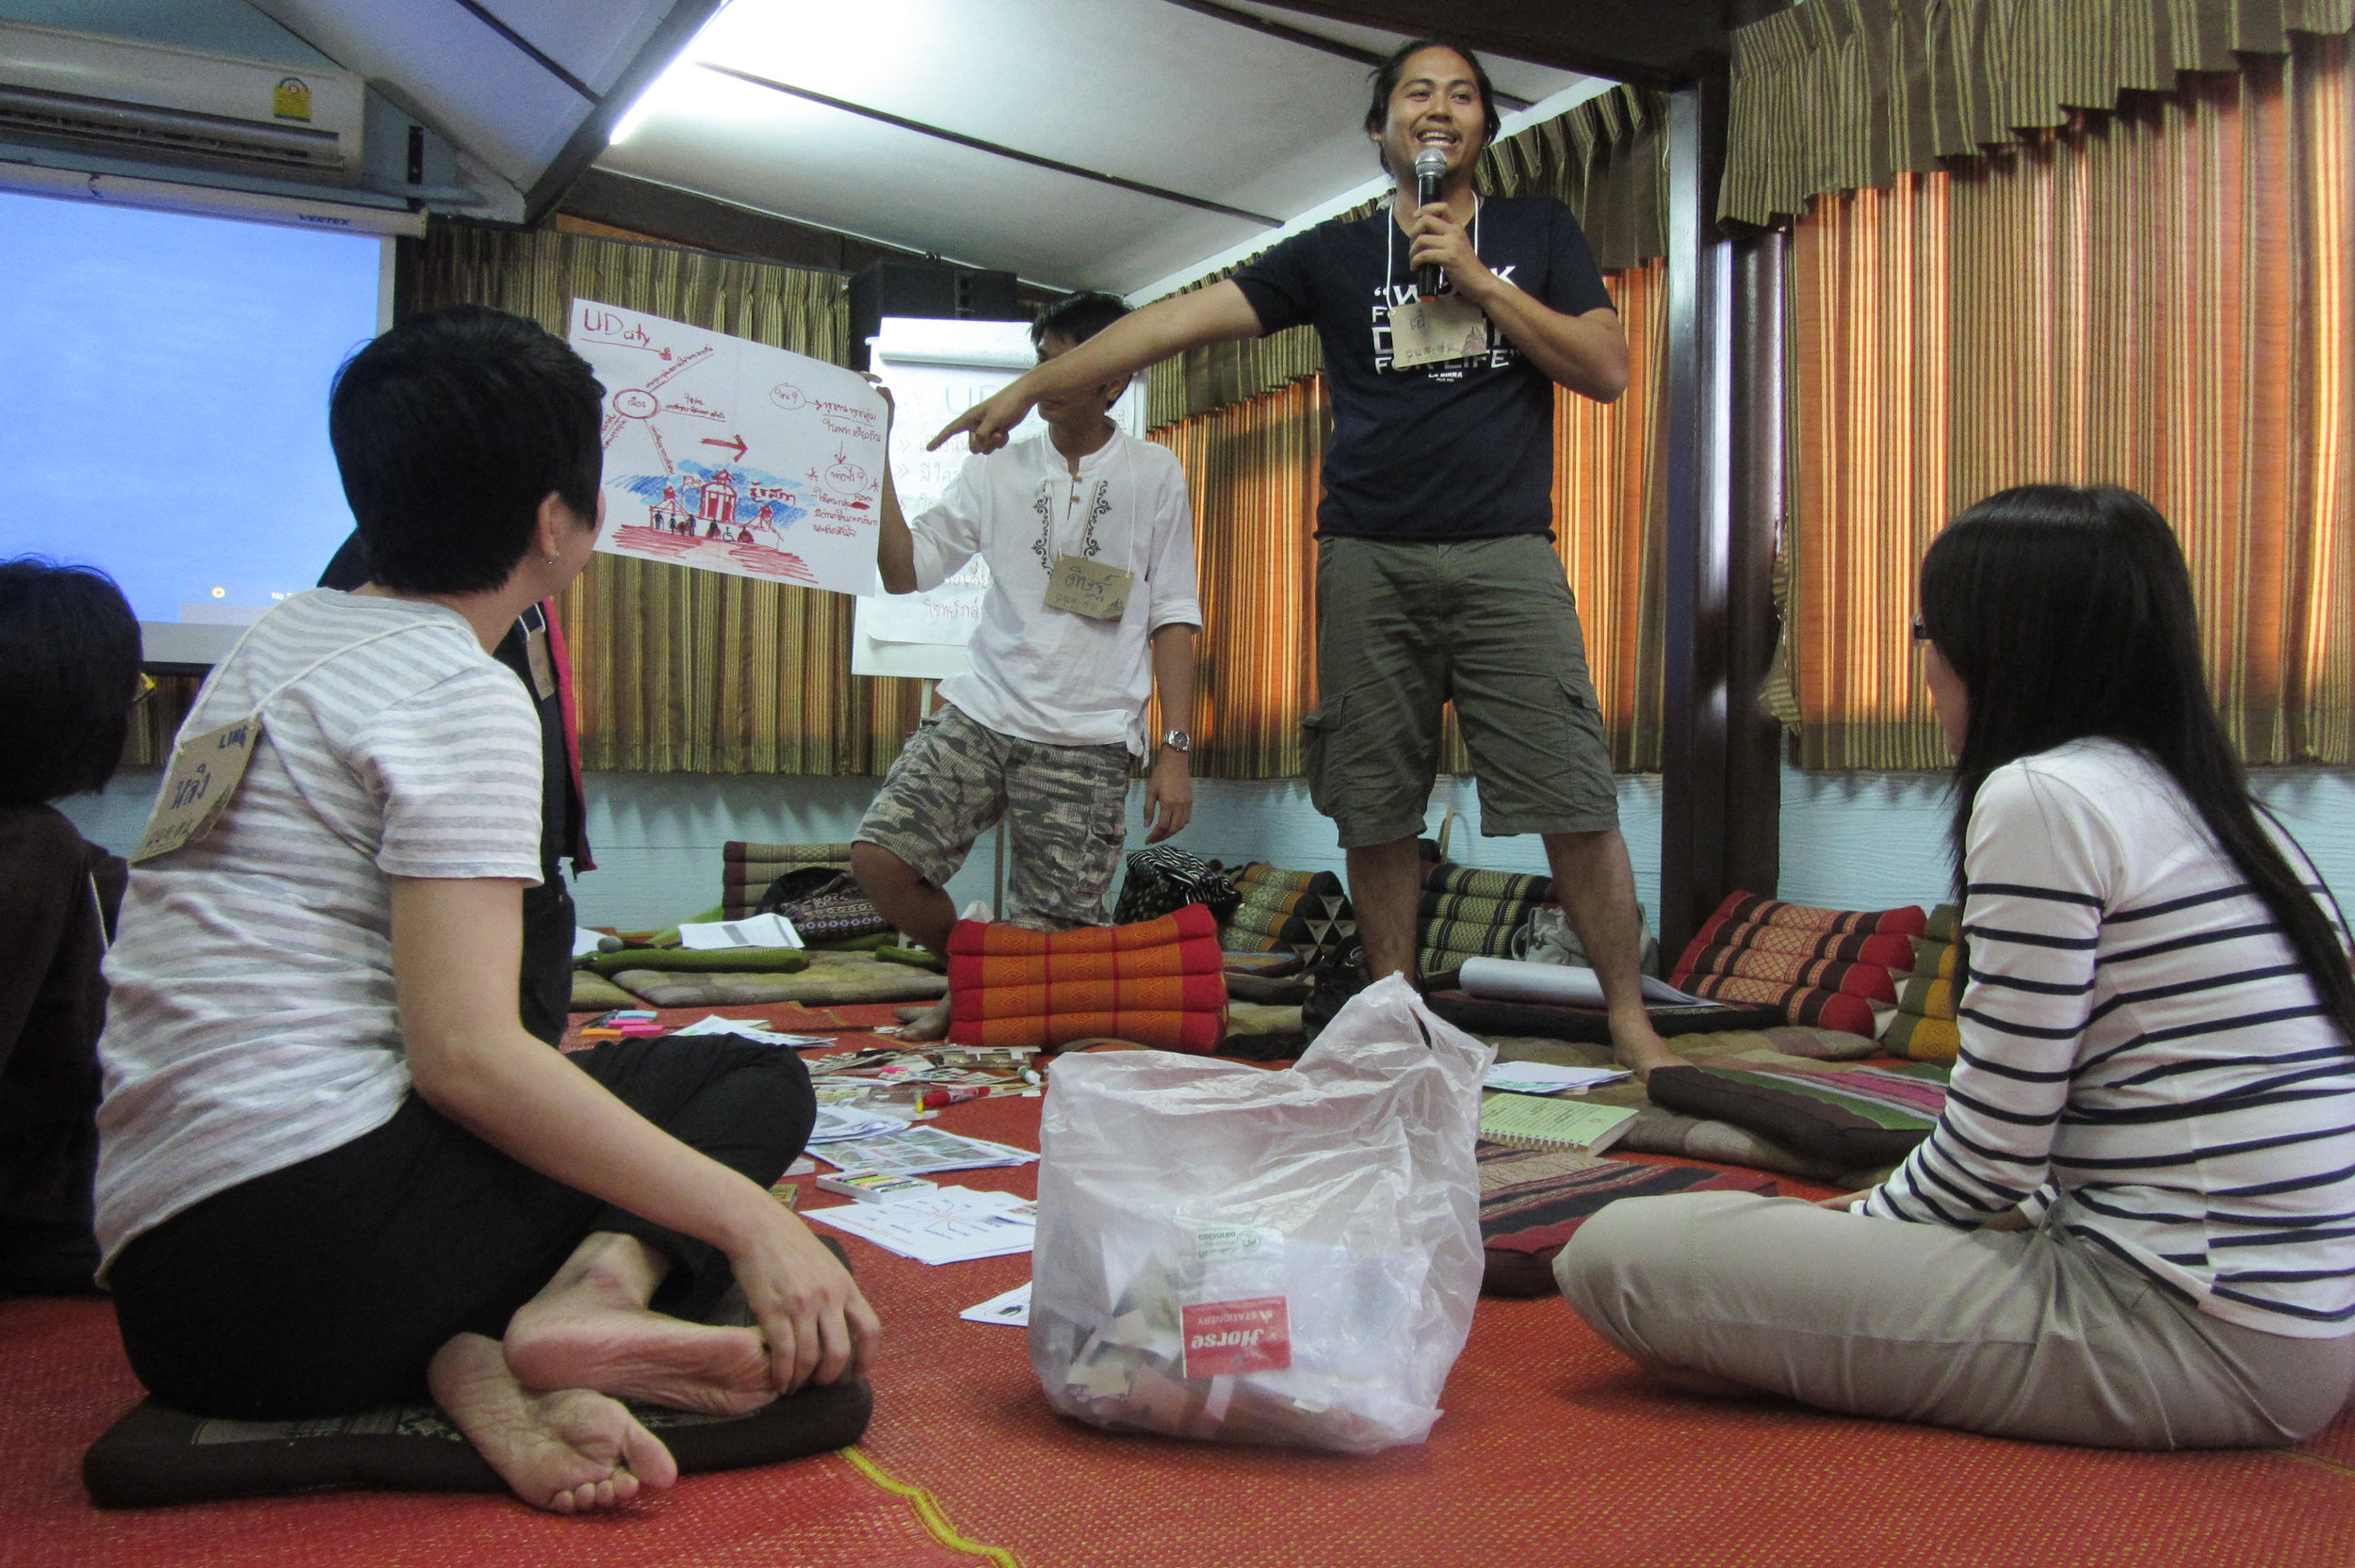 Universal Design workshop: Creating a Universal Design community in Thailand